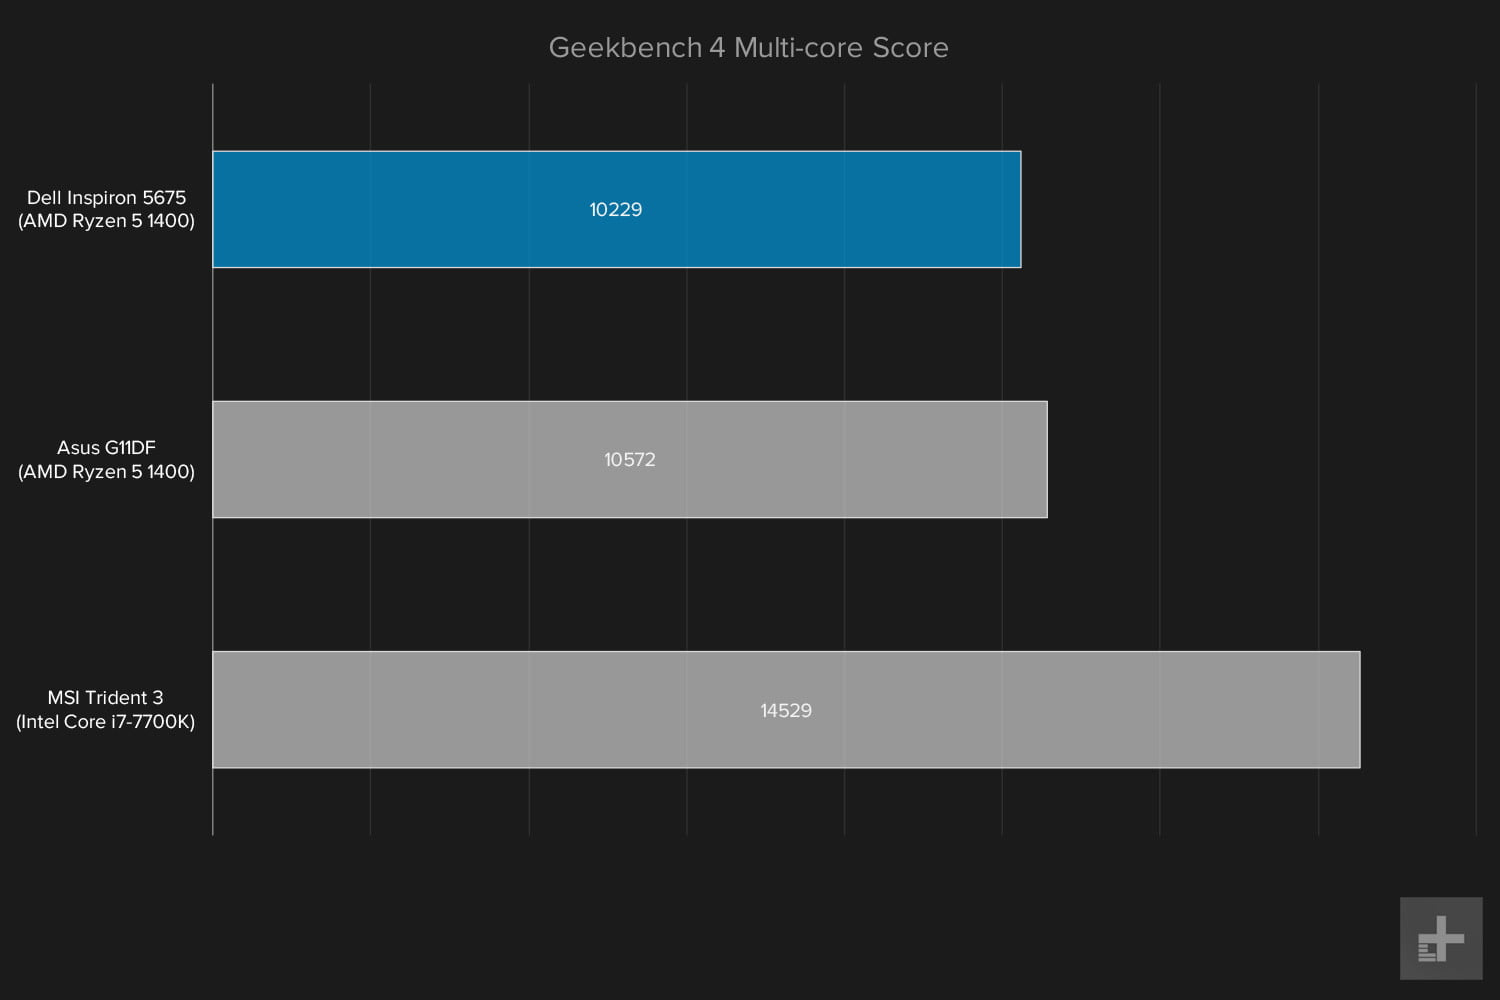 Dell Inspiron 5675 review Geekbench multi